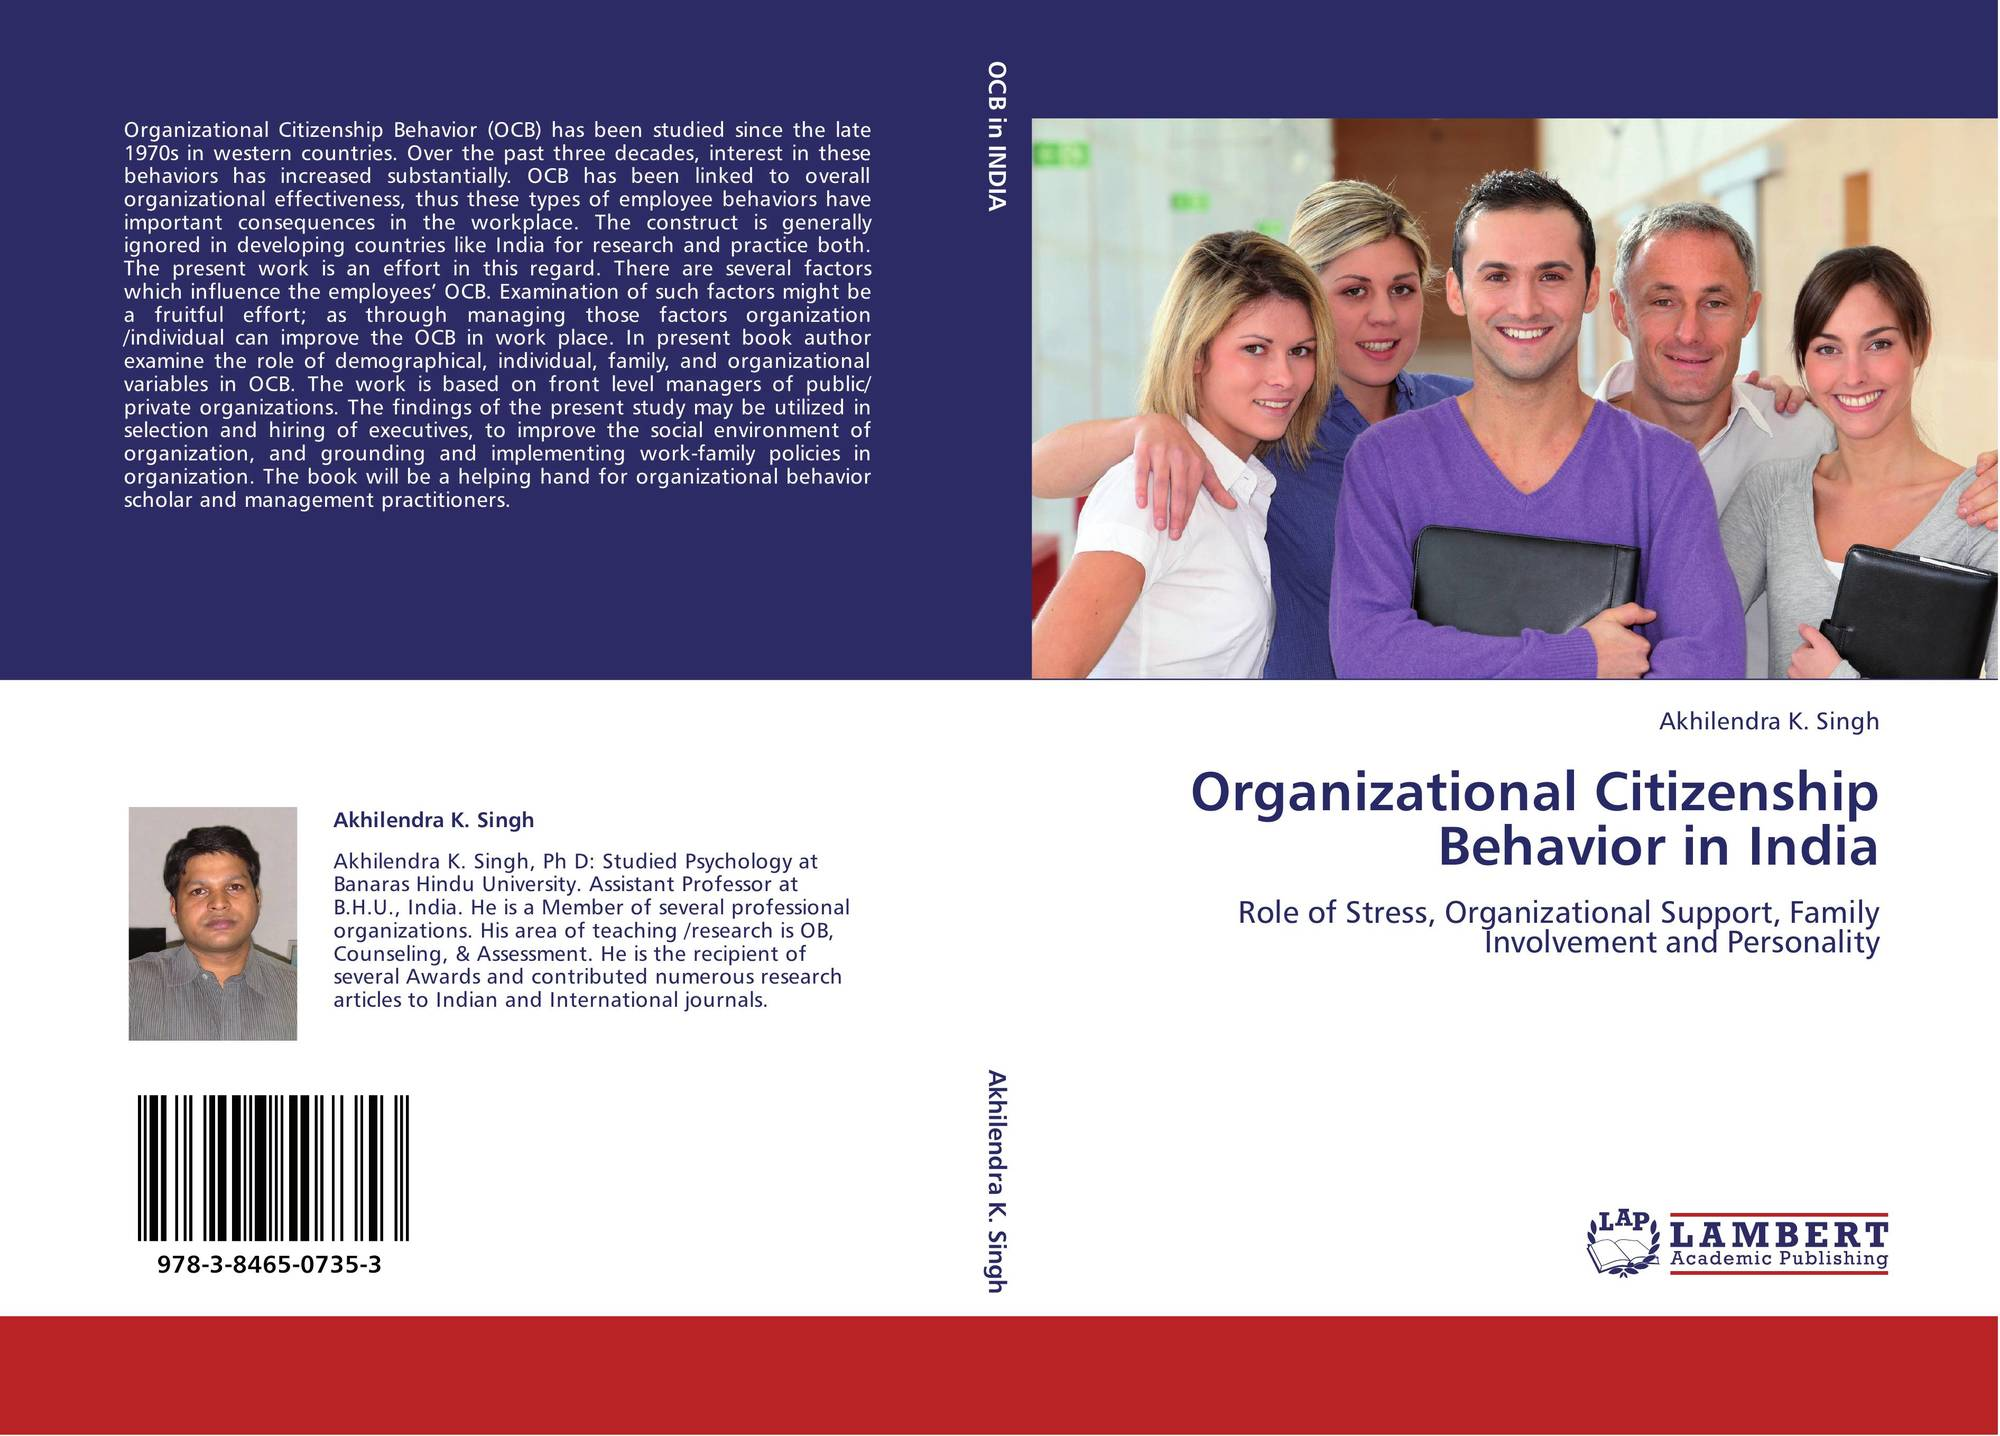 organisational behaviour ocb and cwb Purpose the purpose of this study was to investigate relationships between dimensions of work ethic and dimensions of organizational citizenship behavior (ocb) and.